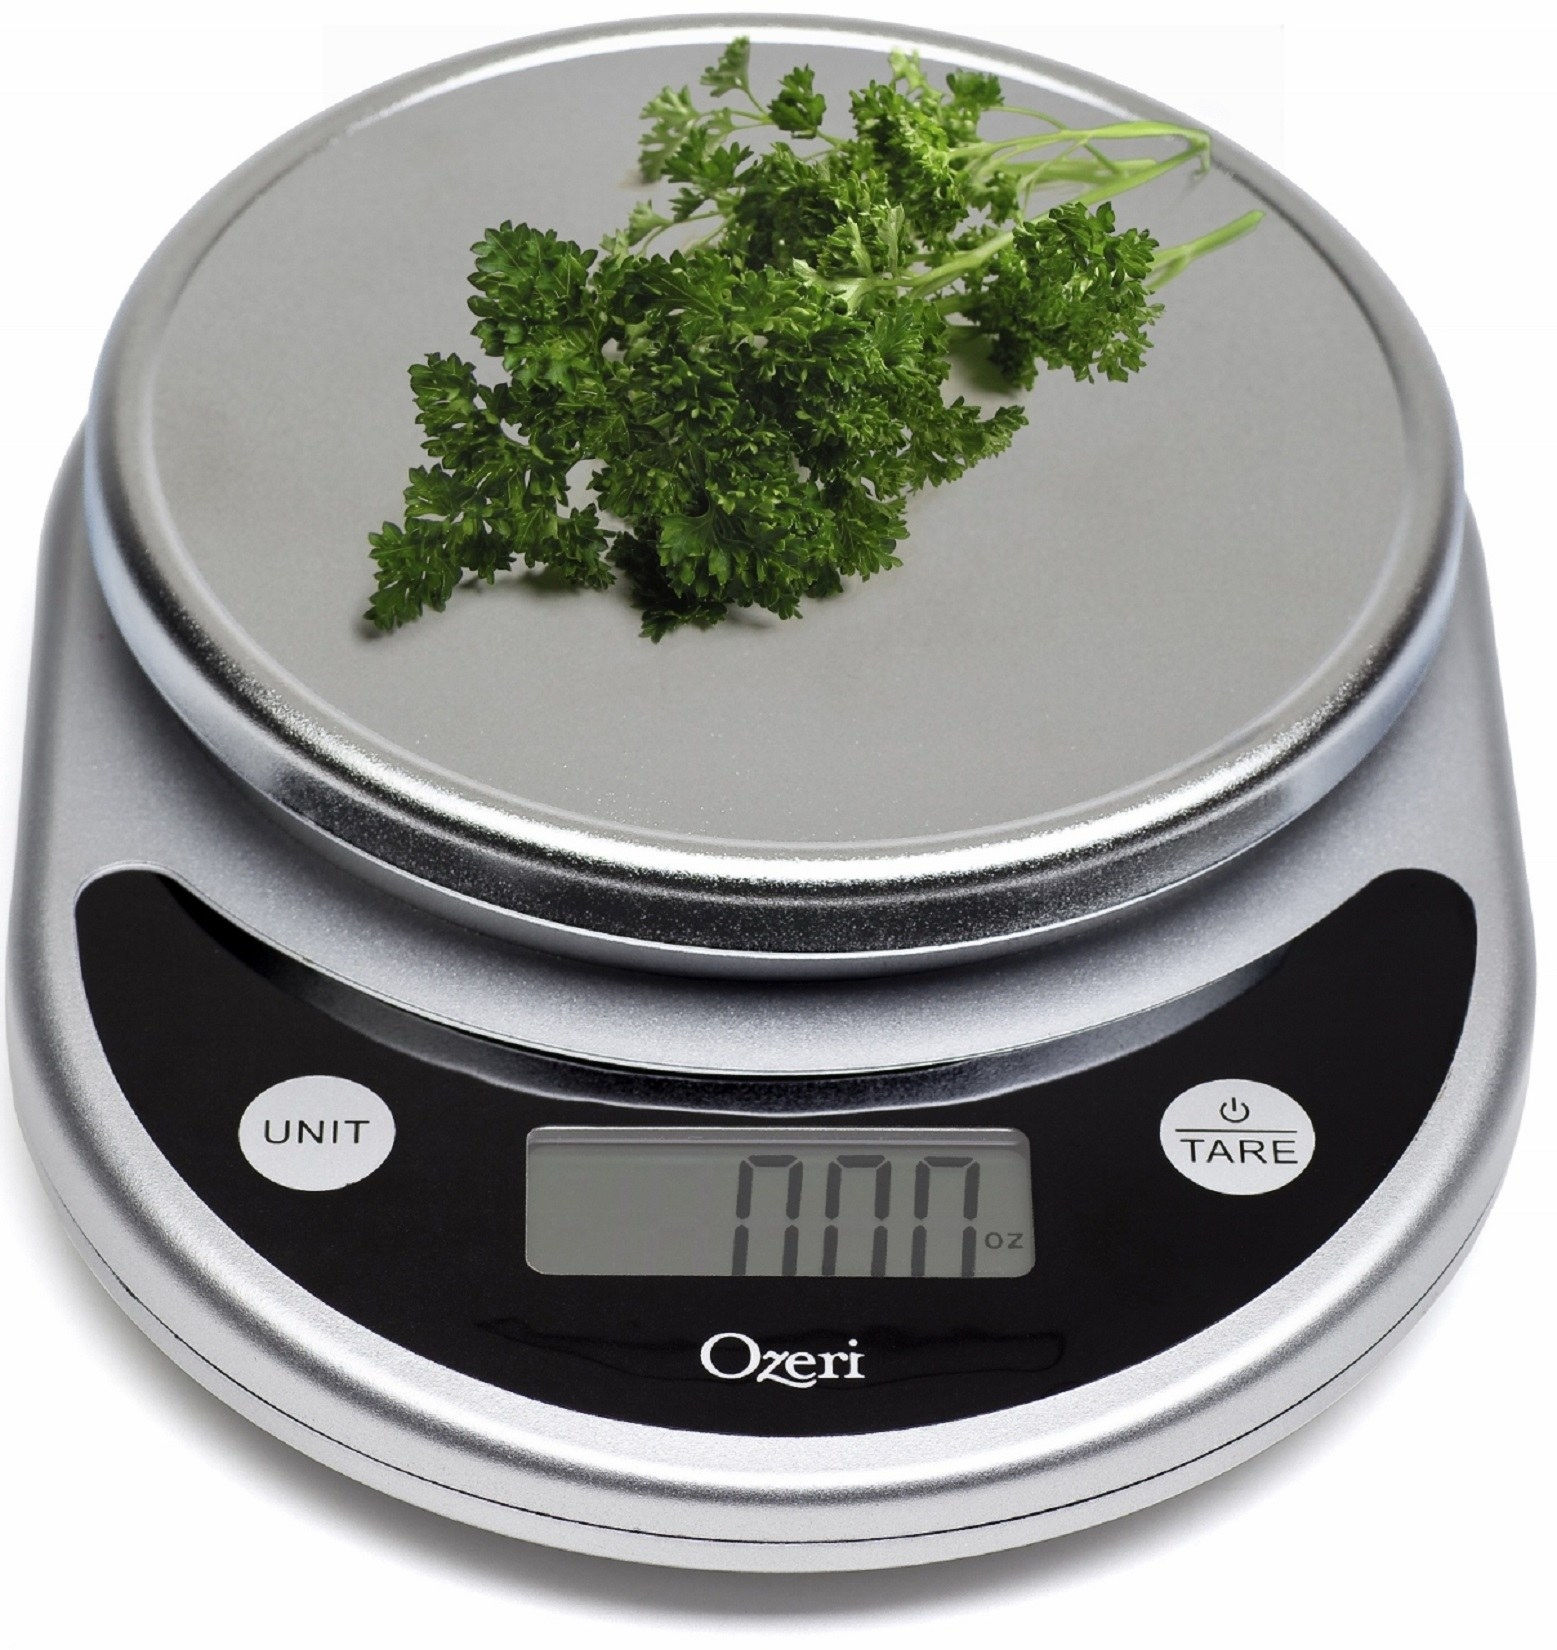 The black on silver multifunctional digital food scale